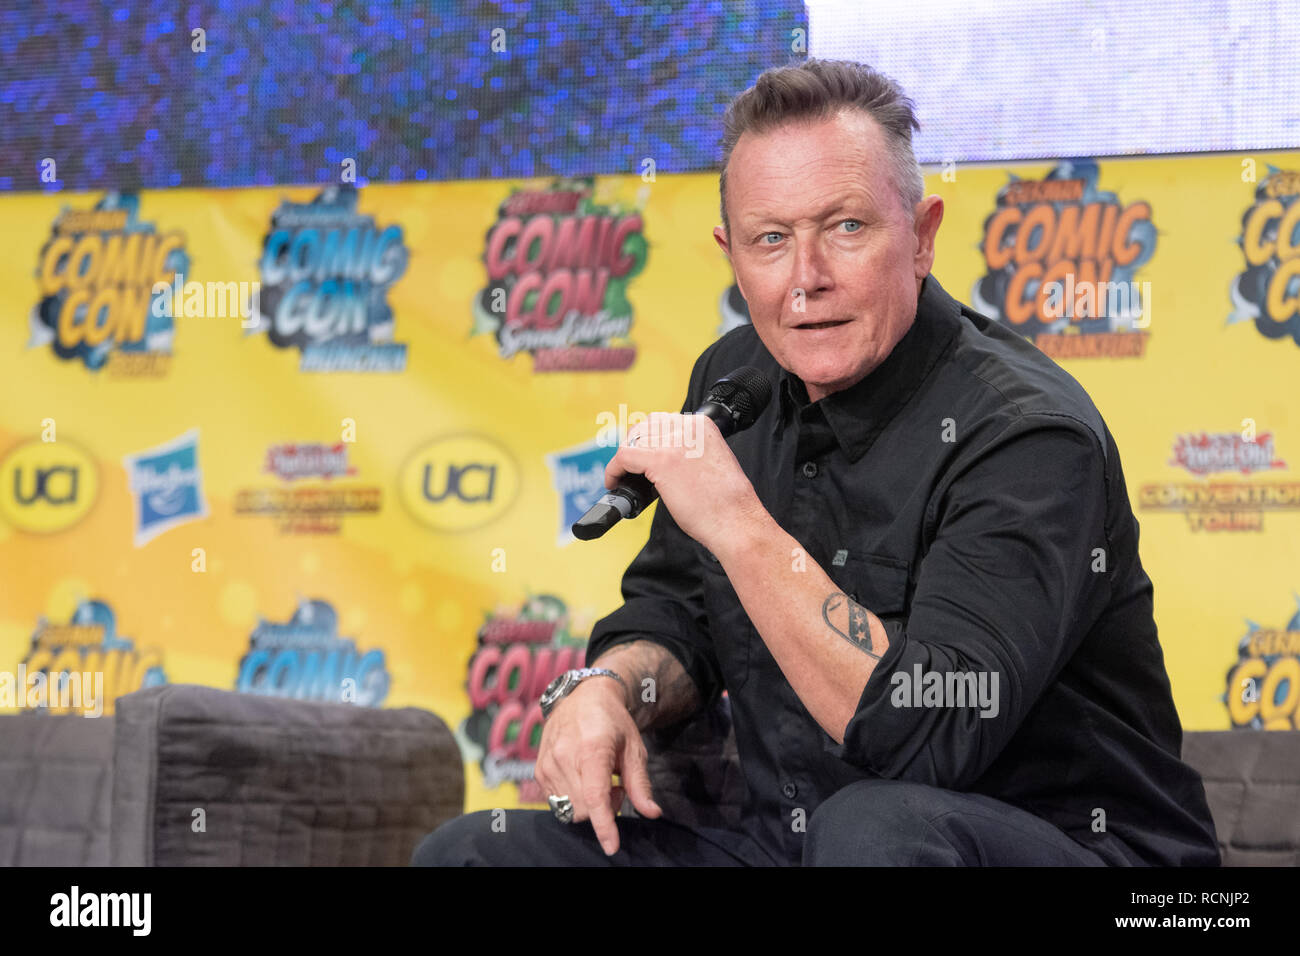 DORTMUND, GERMANY - December 1st 2018: Robert Patrick (*1958, actor, The X-Files, Terminator 2) at German Comic Con Dortmund, a two day fan convention - Stock Image